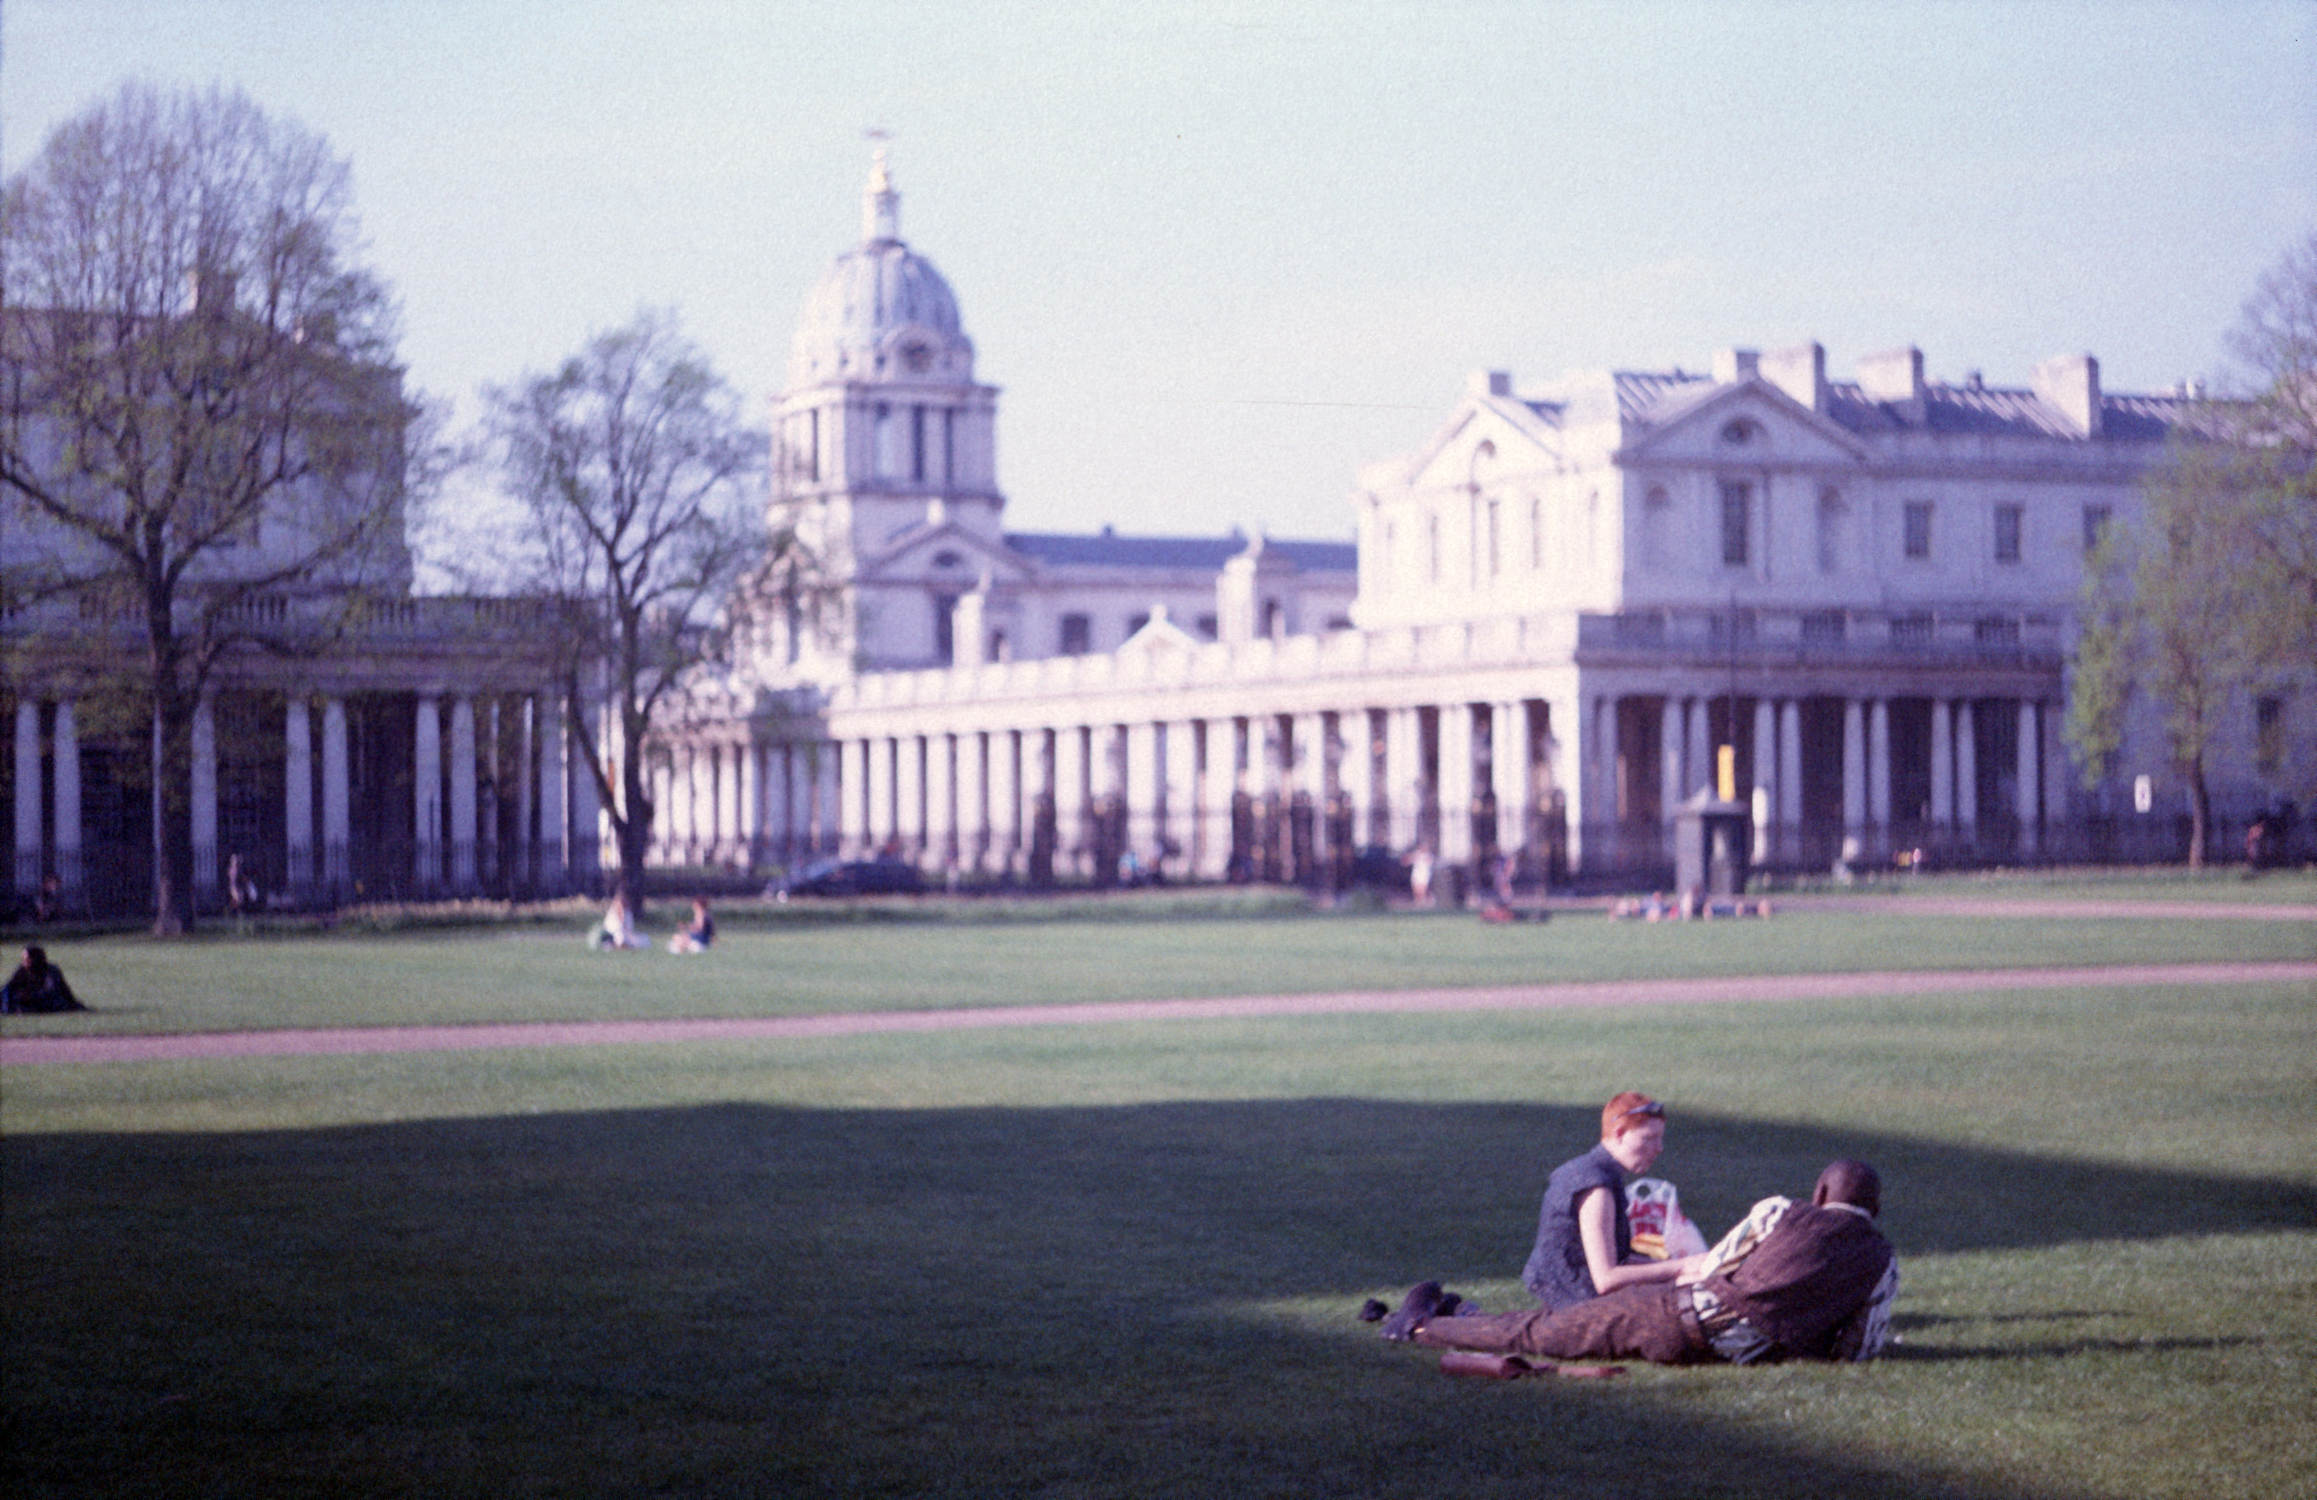 Couple on Greenwich lawn (Pic: Stephen Dowling)